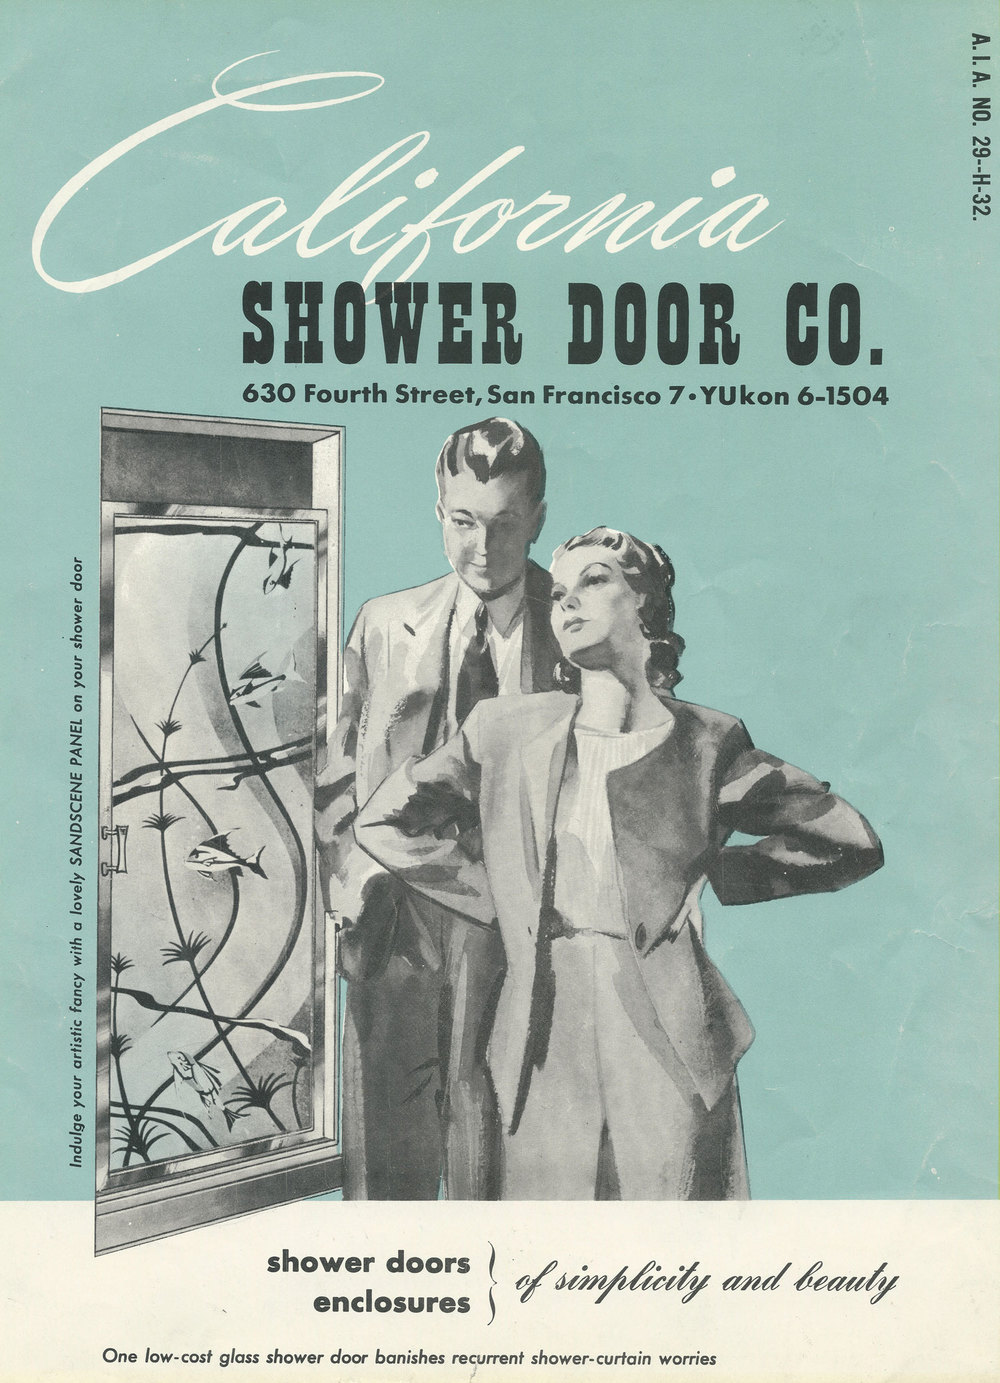 History California Shower Door